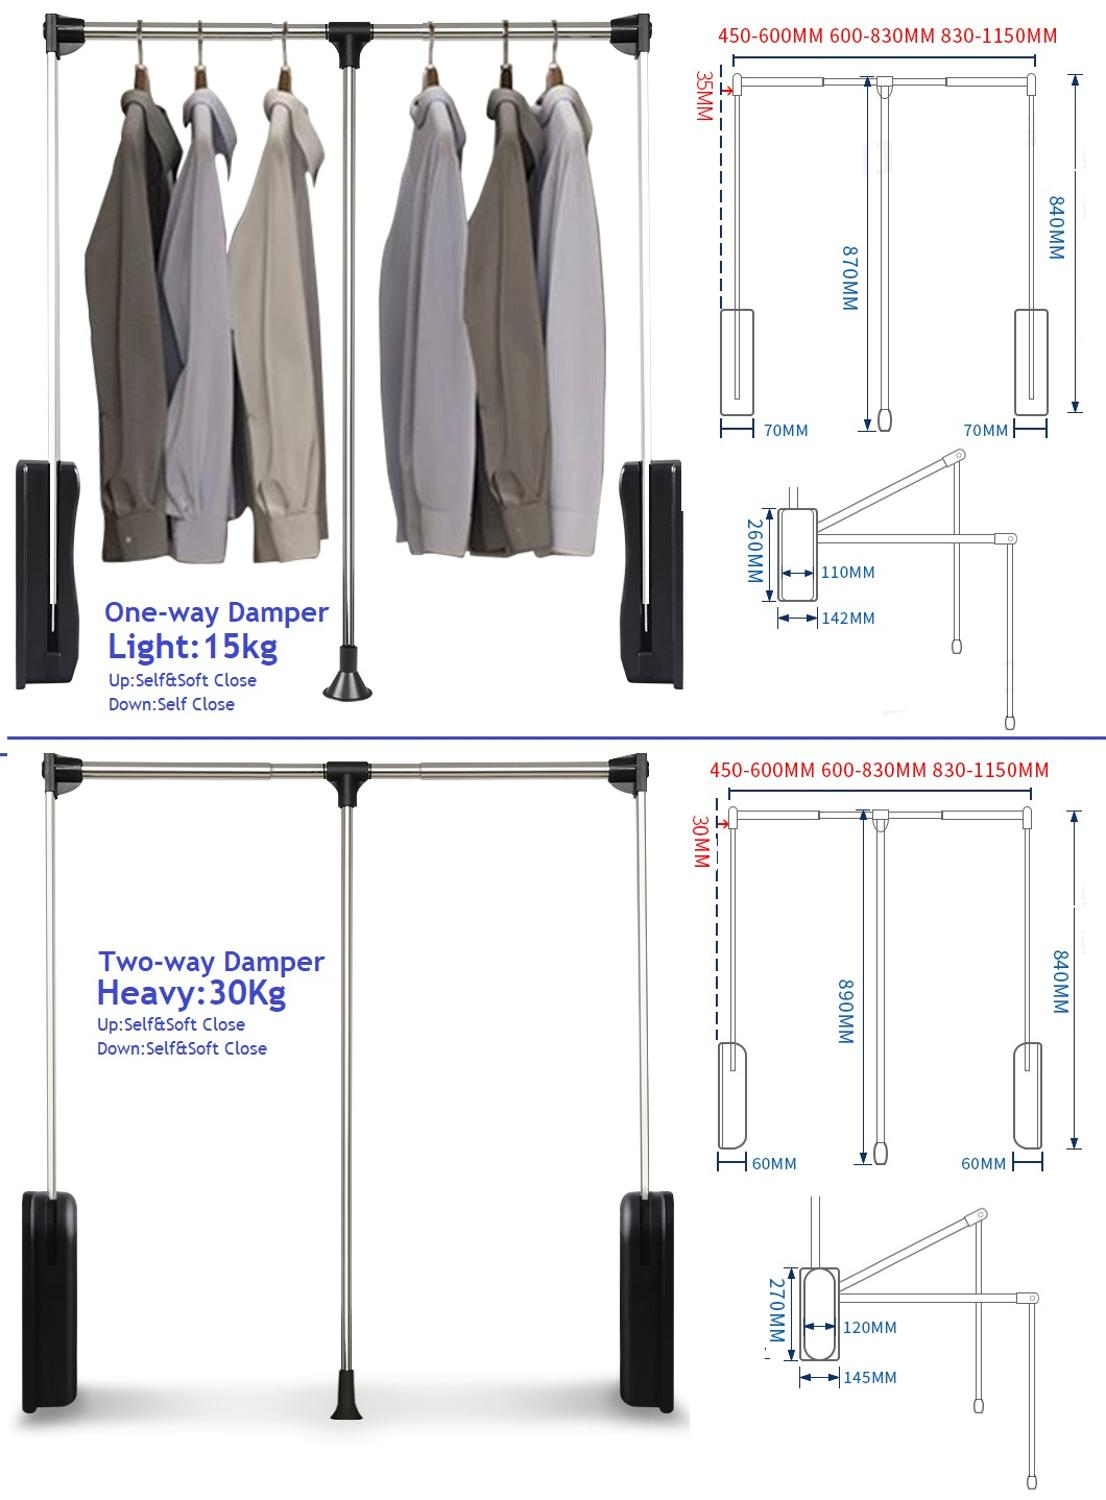 One Way Two Way Damper Heavy Duty  Adjustable Pull-Down Wardrobe Closet Rod Hanging Expanding Wardrobe Lift